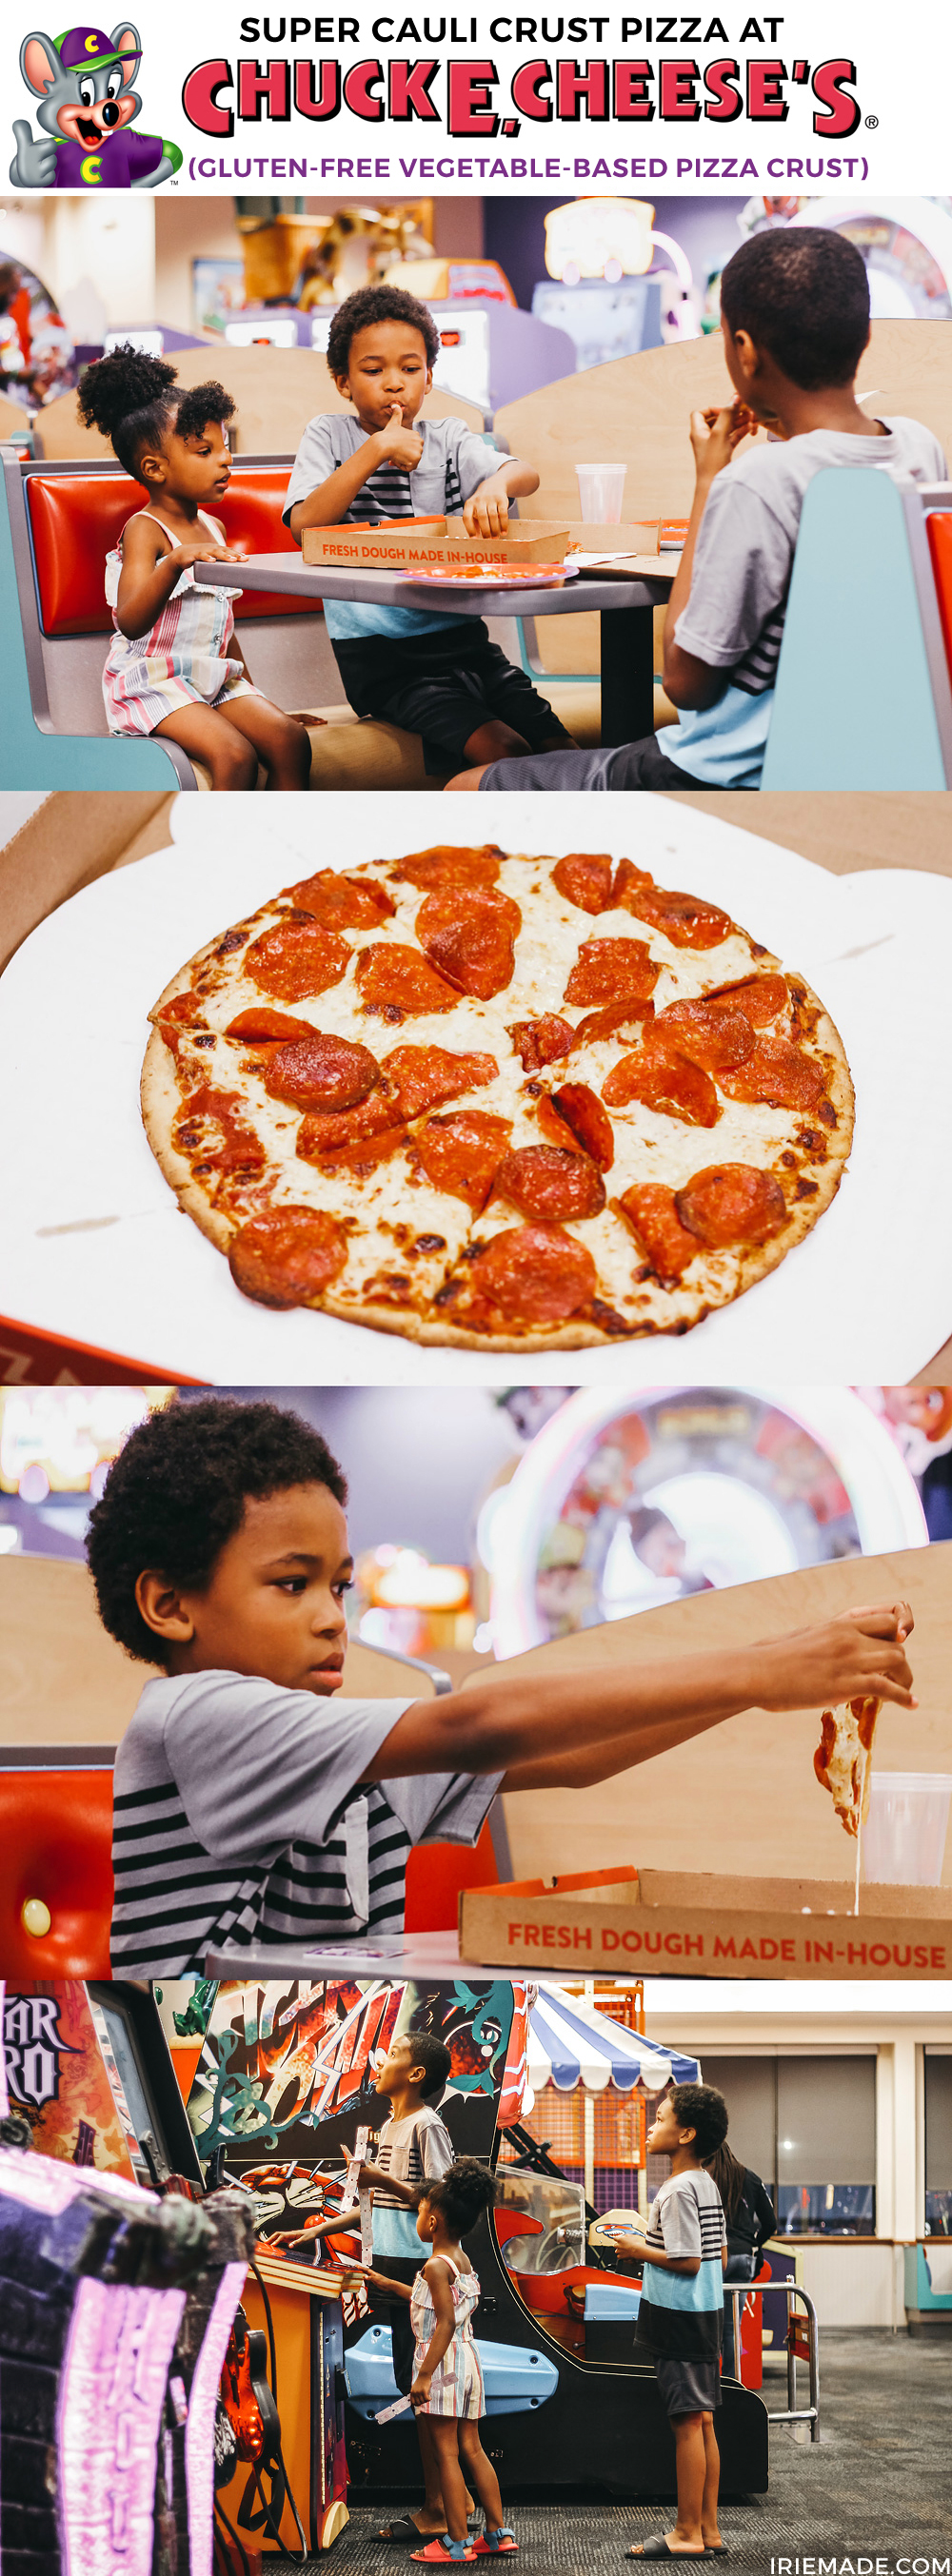 Super Cauli Crust Cauliflower Gluten-Free Pizza at Chuck E. Cheese's